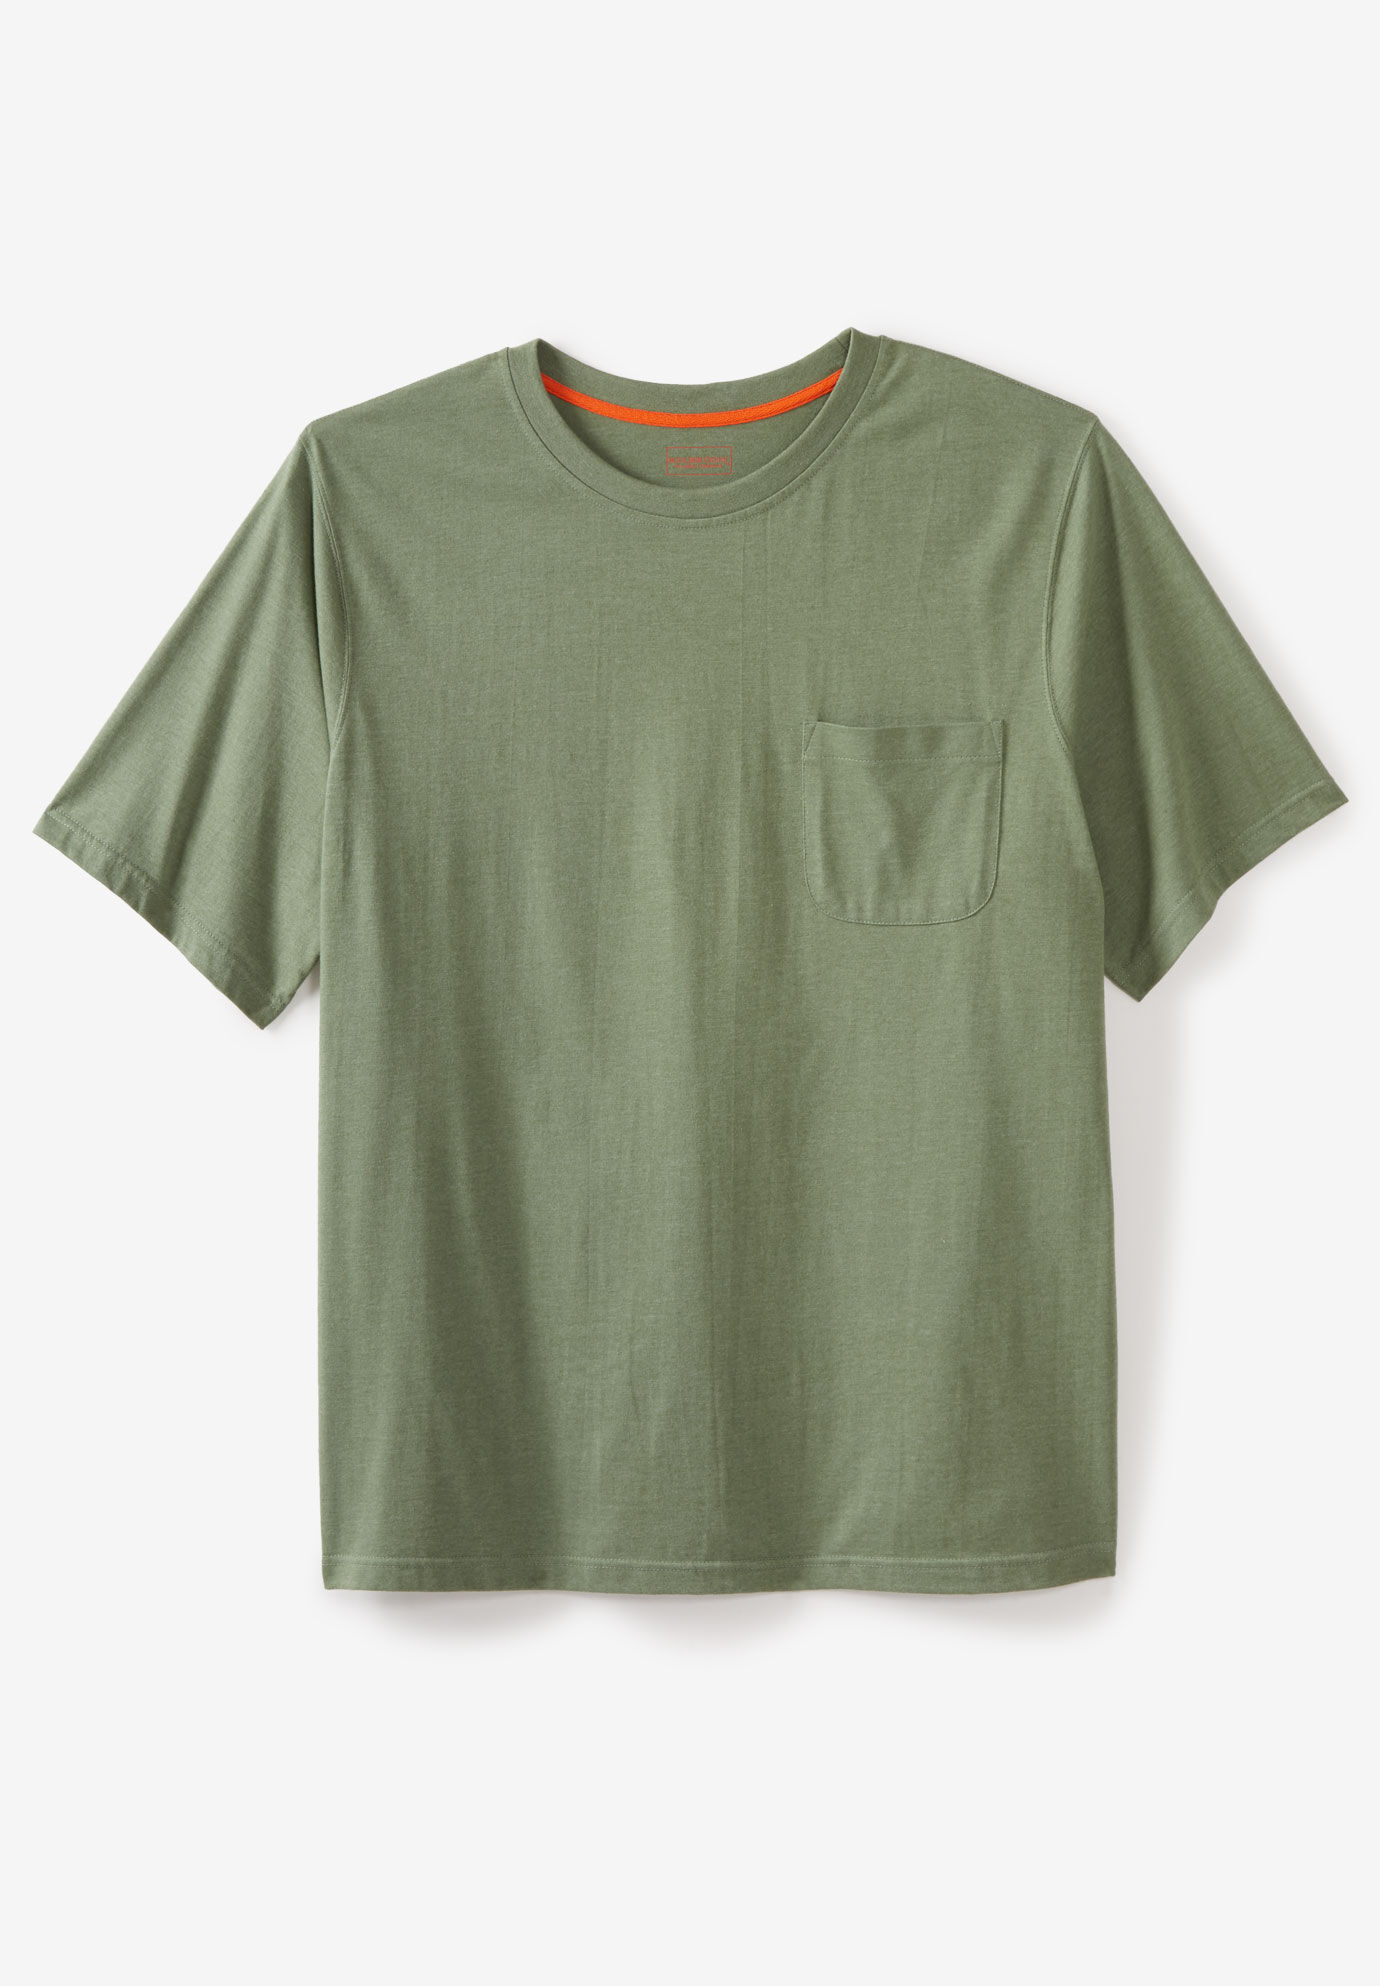 Big and Tall T-Shirts for Men (Size 3XL )   King Size